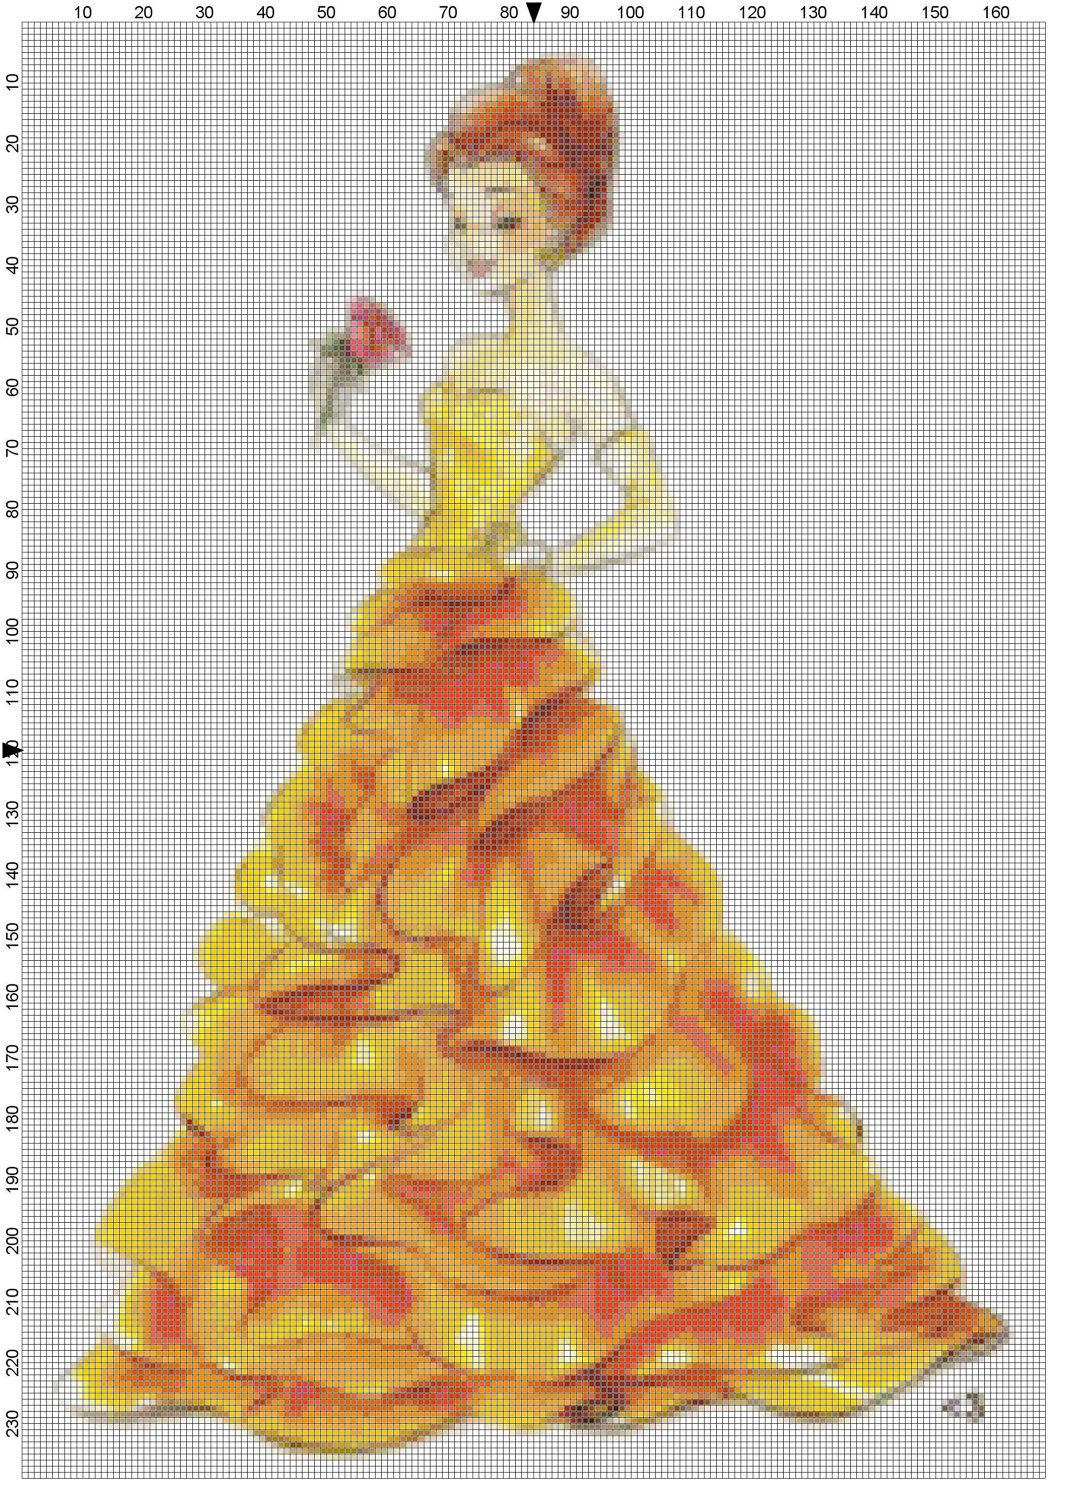 Belle cross stitch